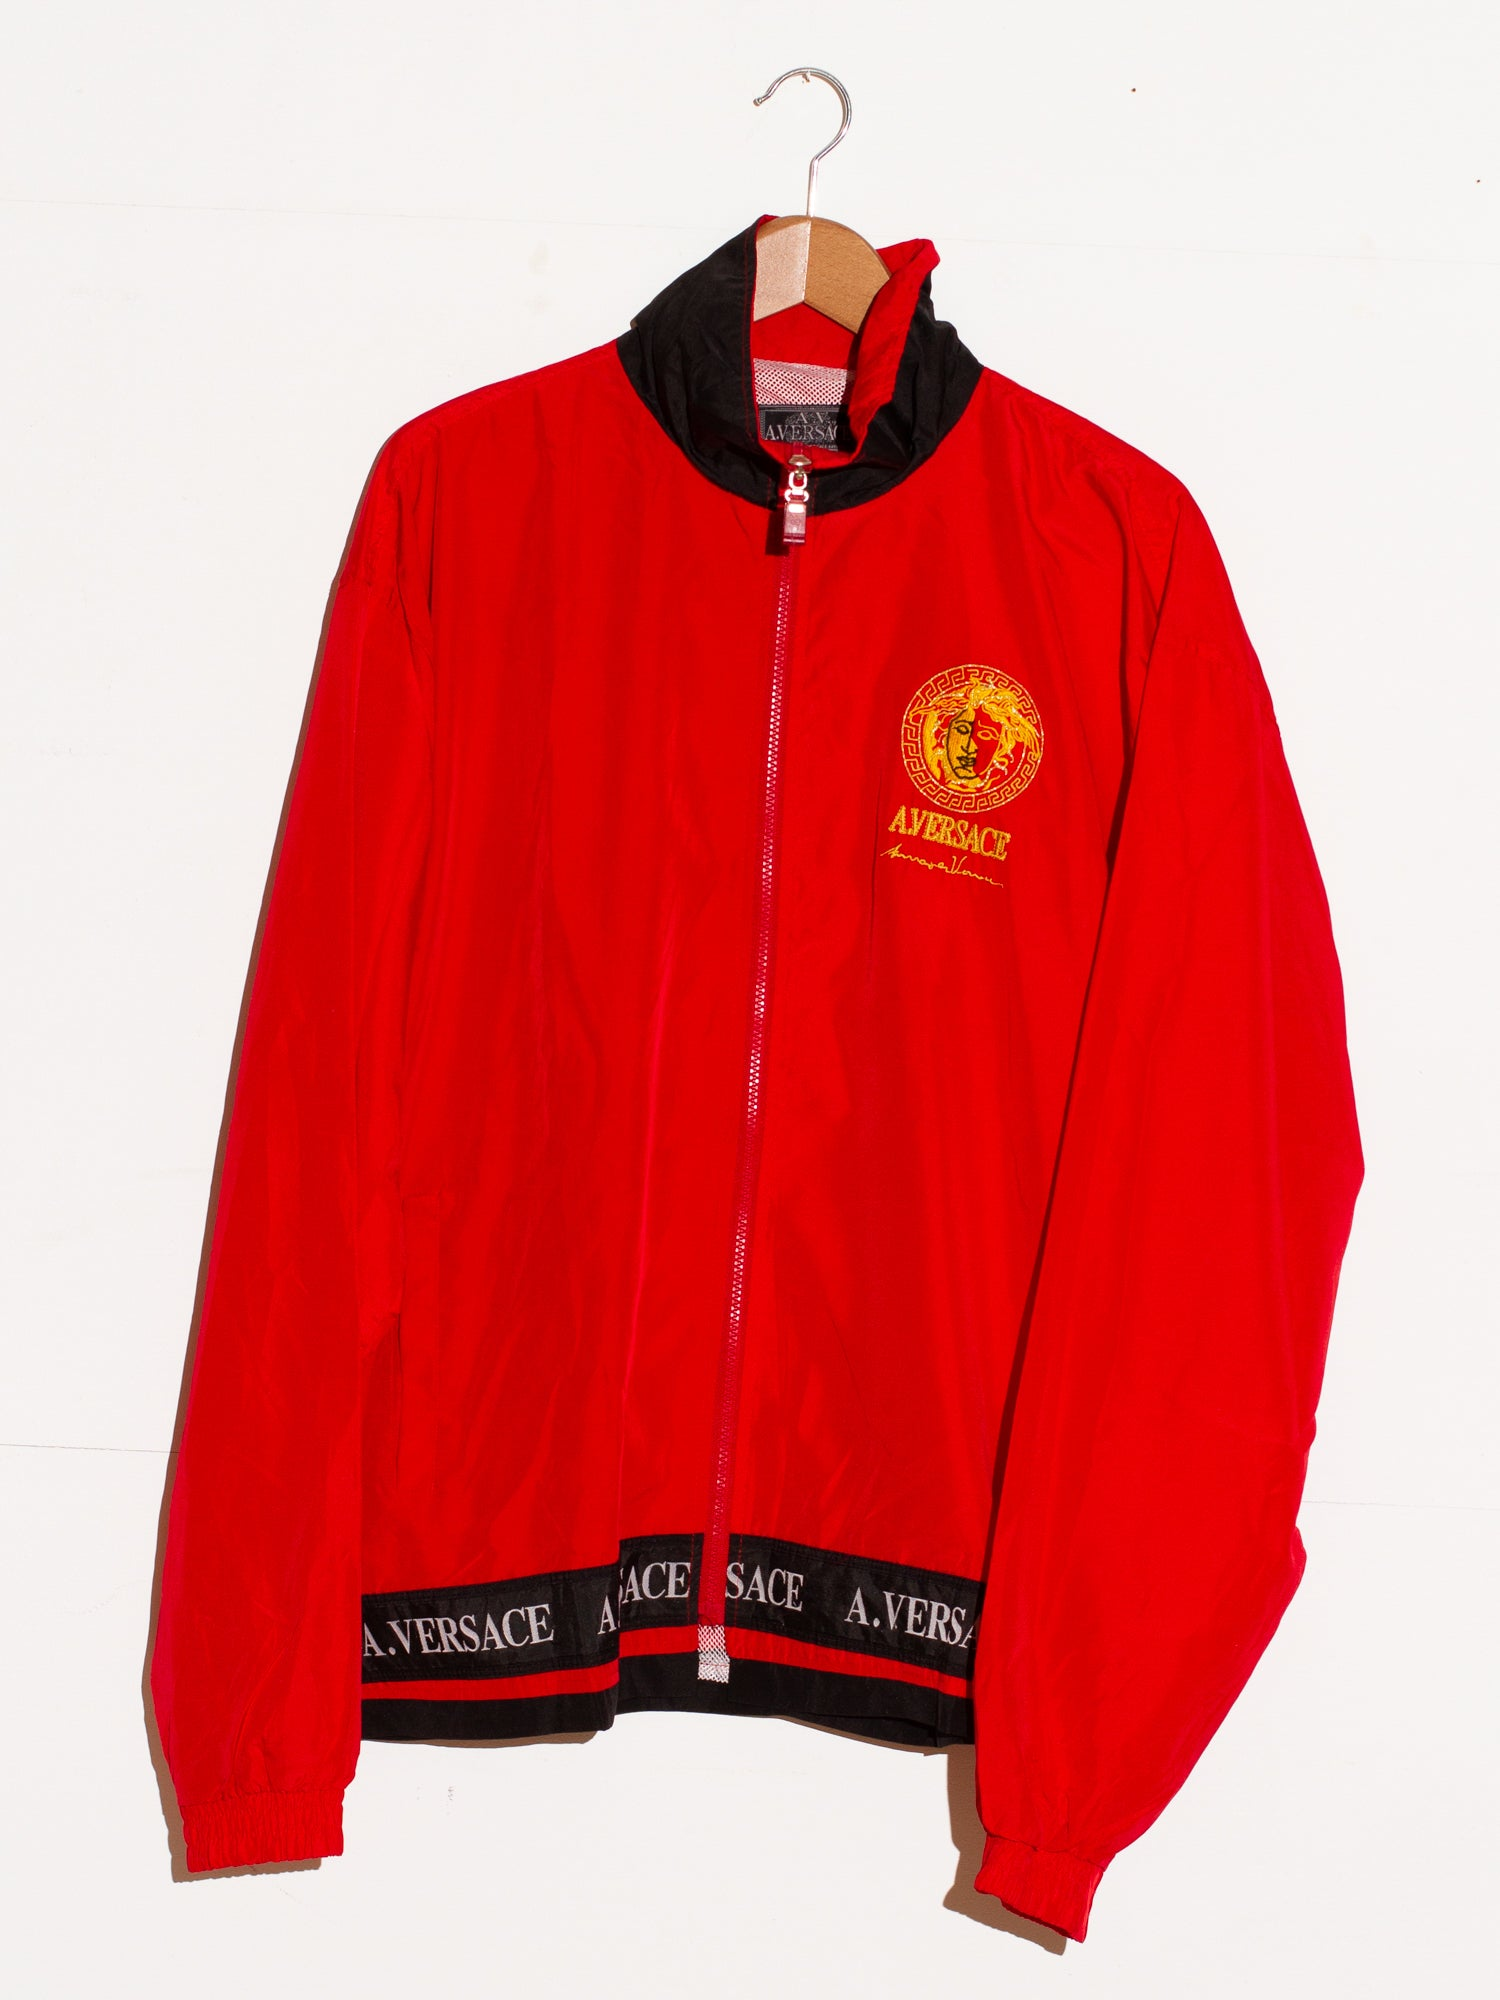 AVERSACE JACKET